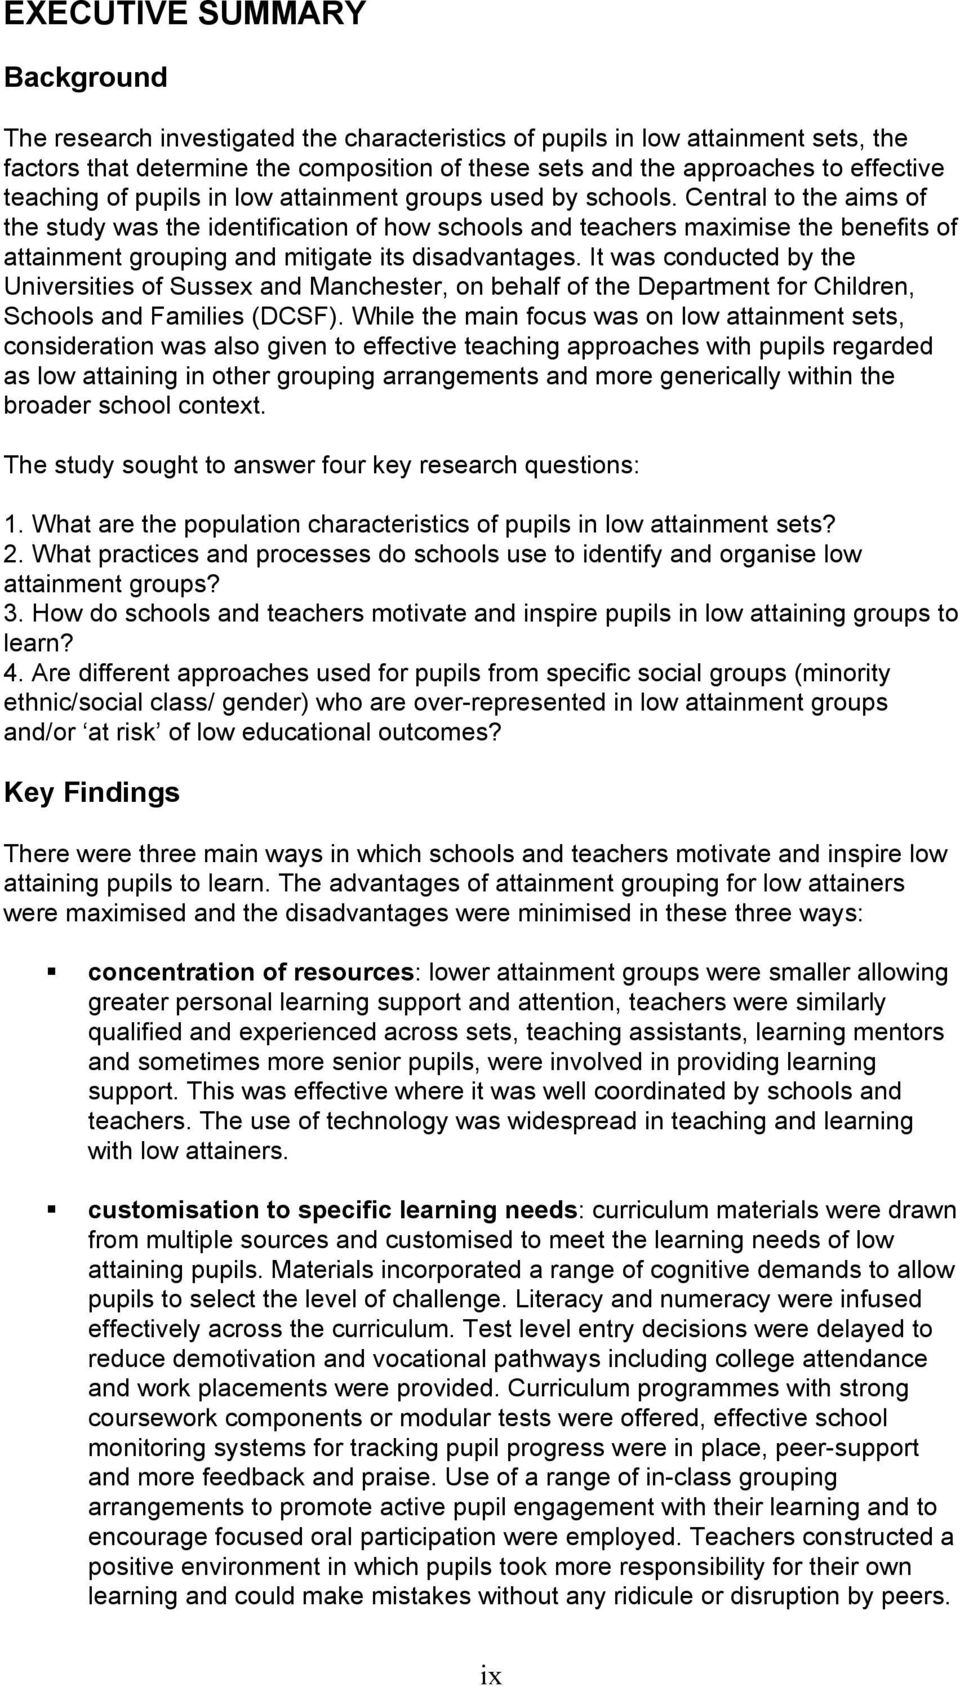 Central to the aims of the study was the identification of how schools and teachers maximise the benefits of attainment grouping and mitigate its disadvantages.